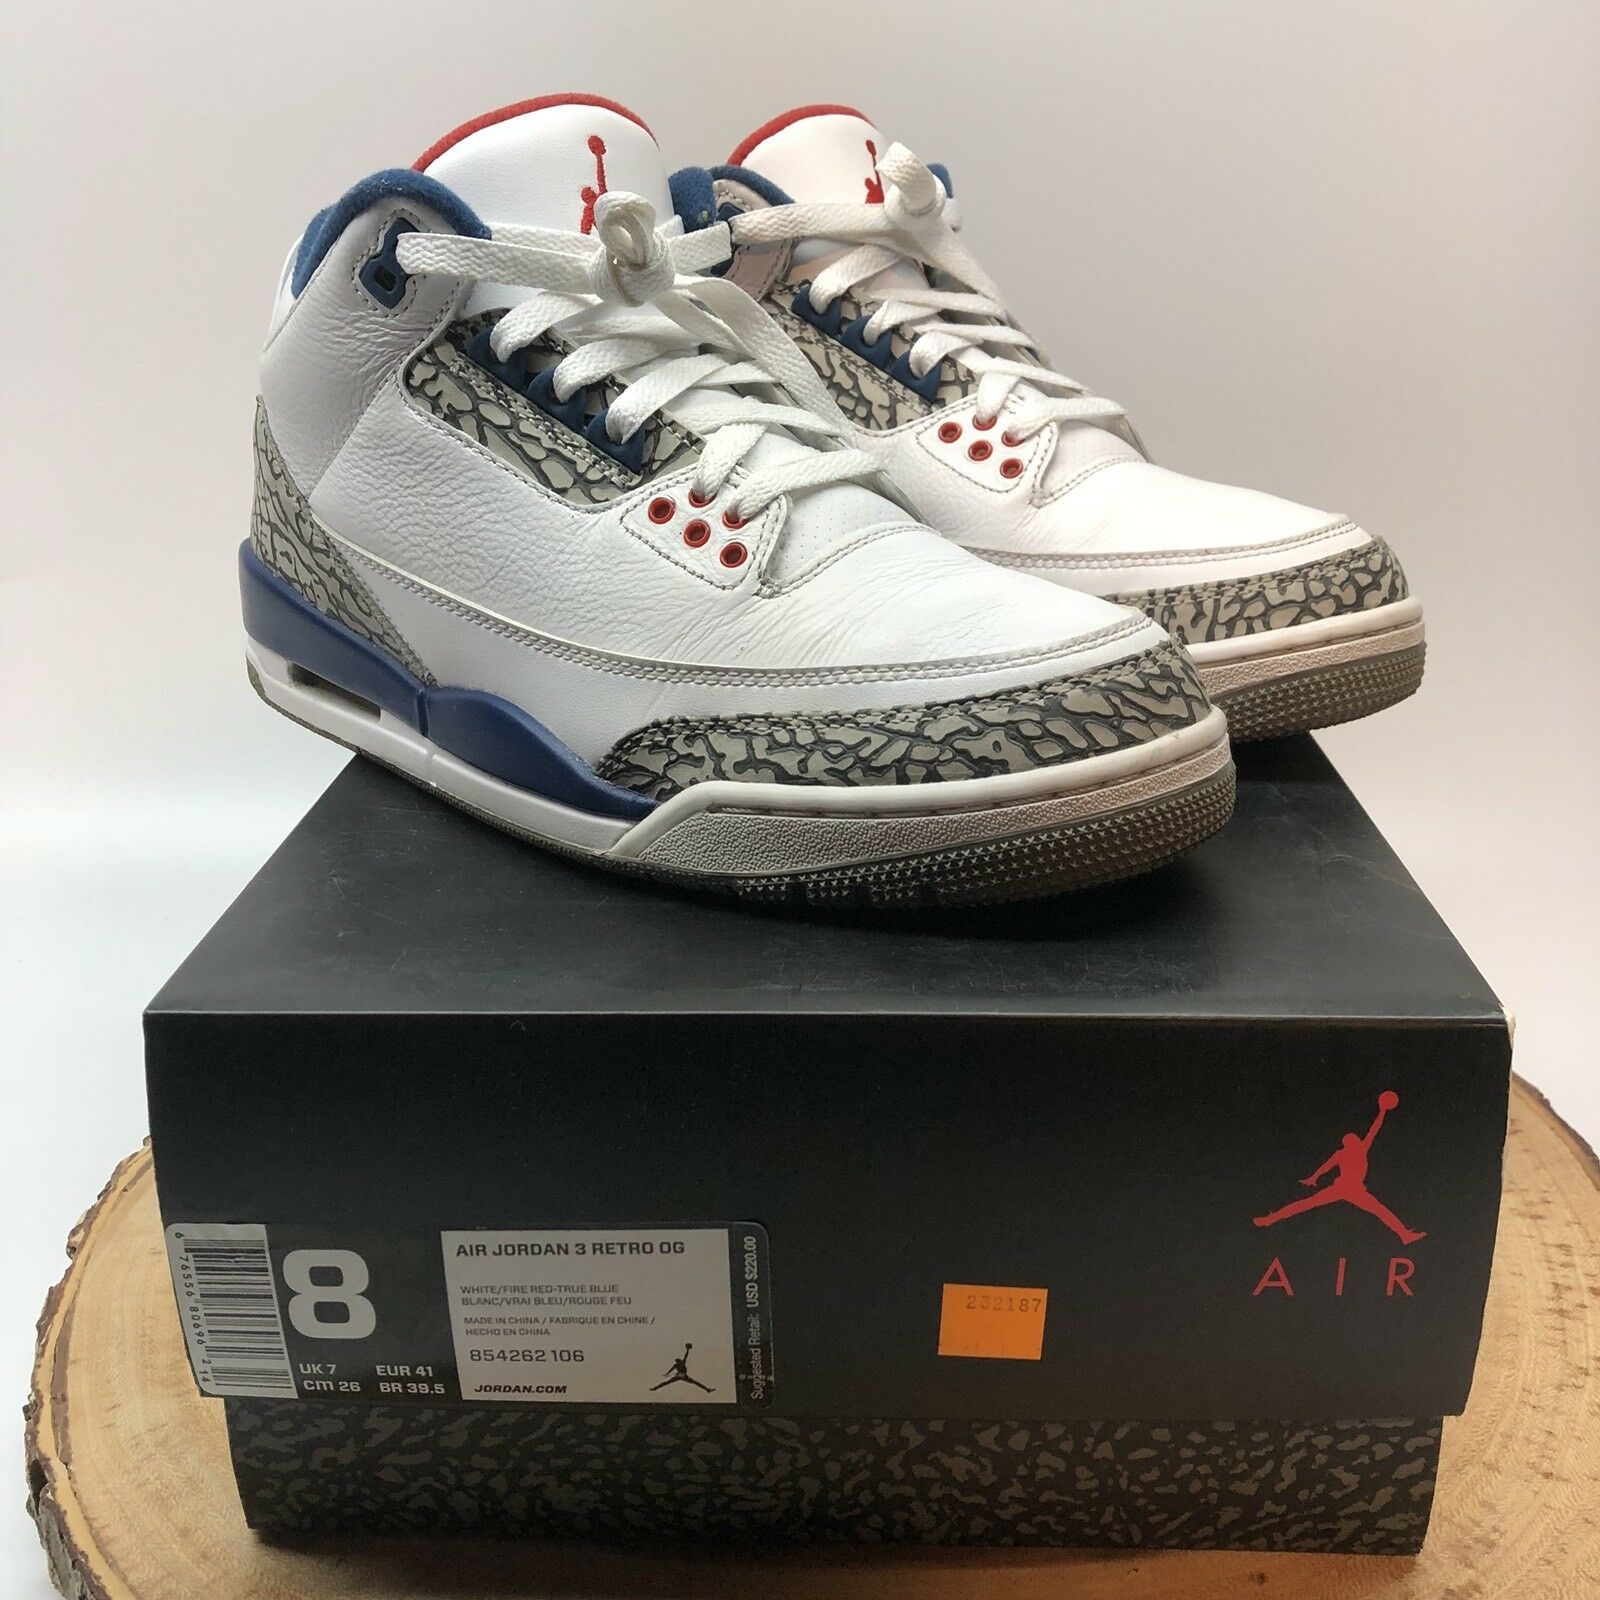 Nike Air Jordan Retro III OG True Blue OG 854262 106 Size 8 Fire Red Cement IV 2